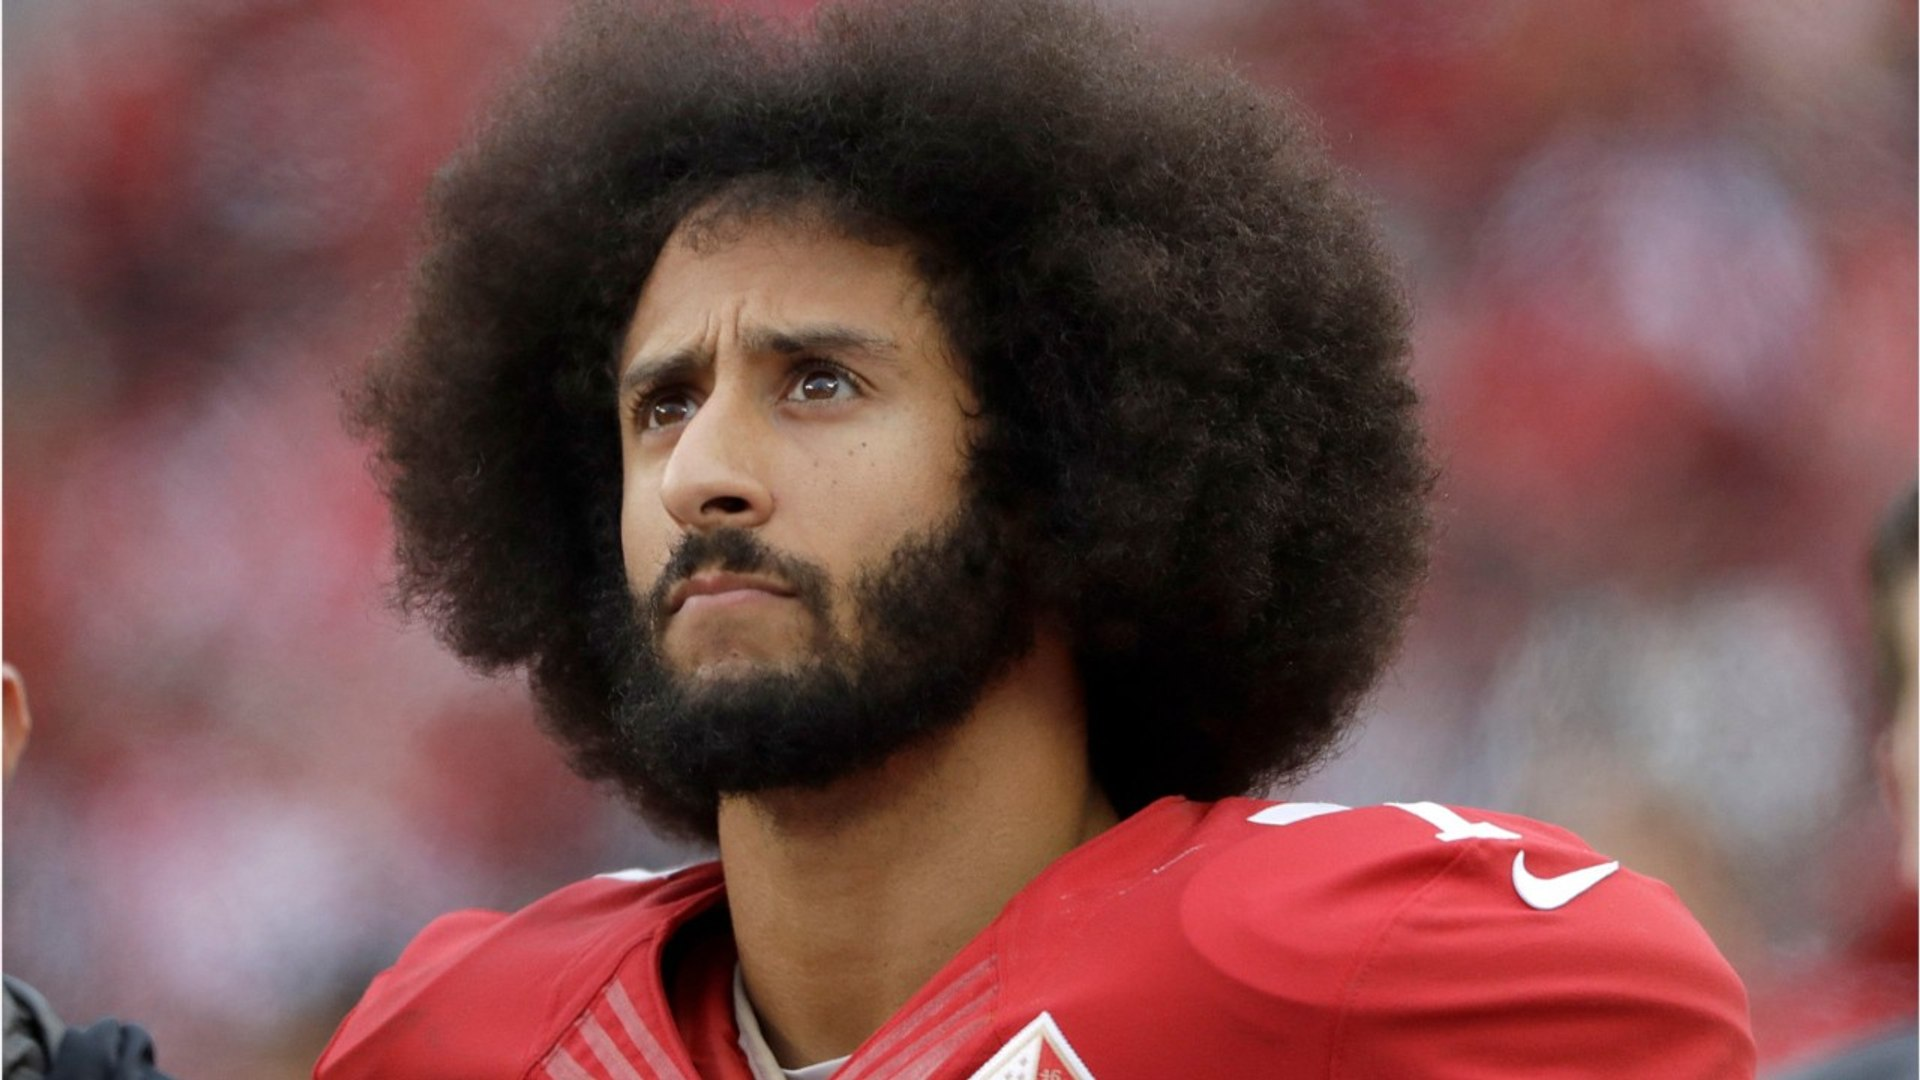 Players On One NFL Team Reportedly Want Colin Kaepernick